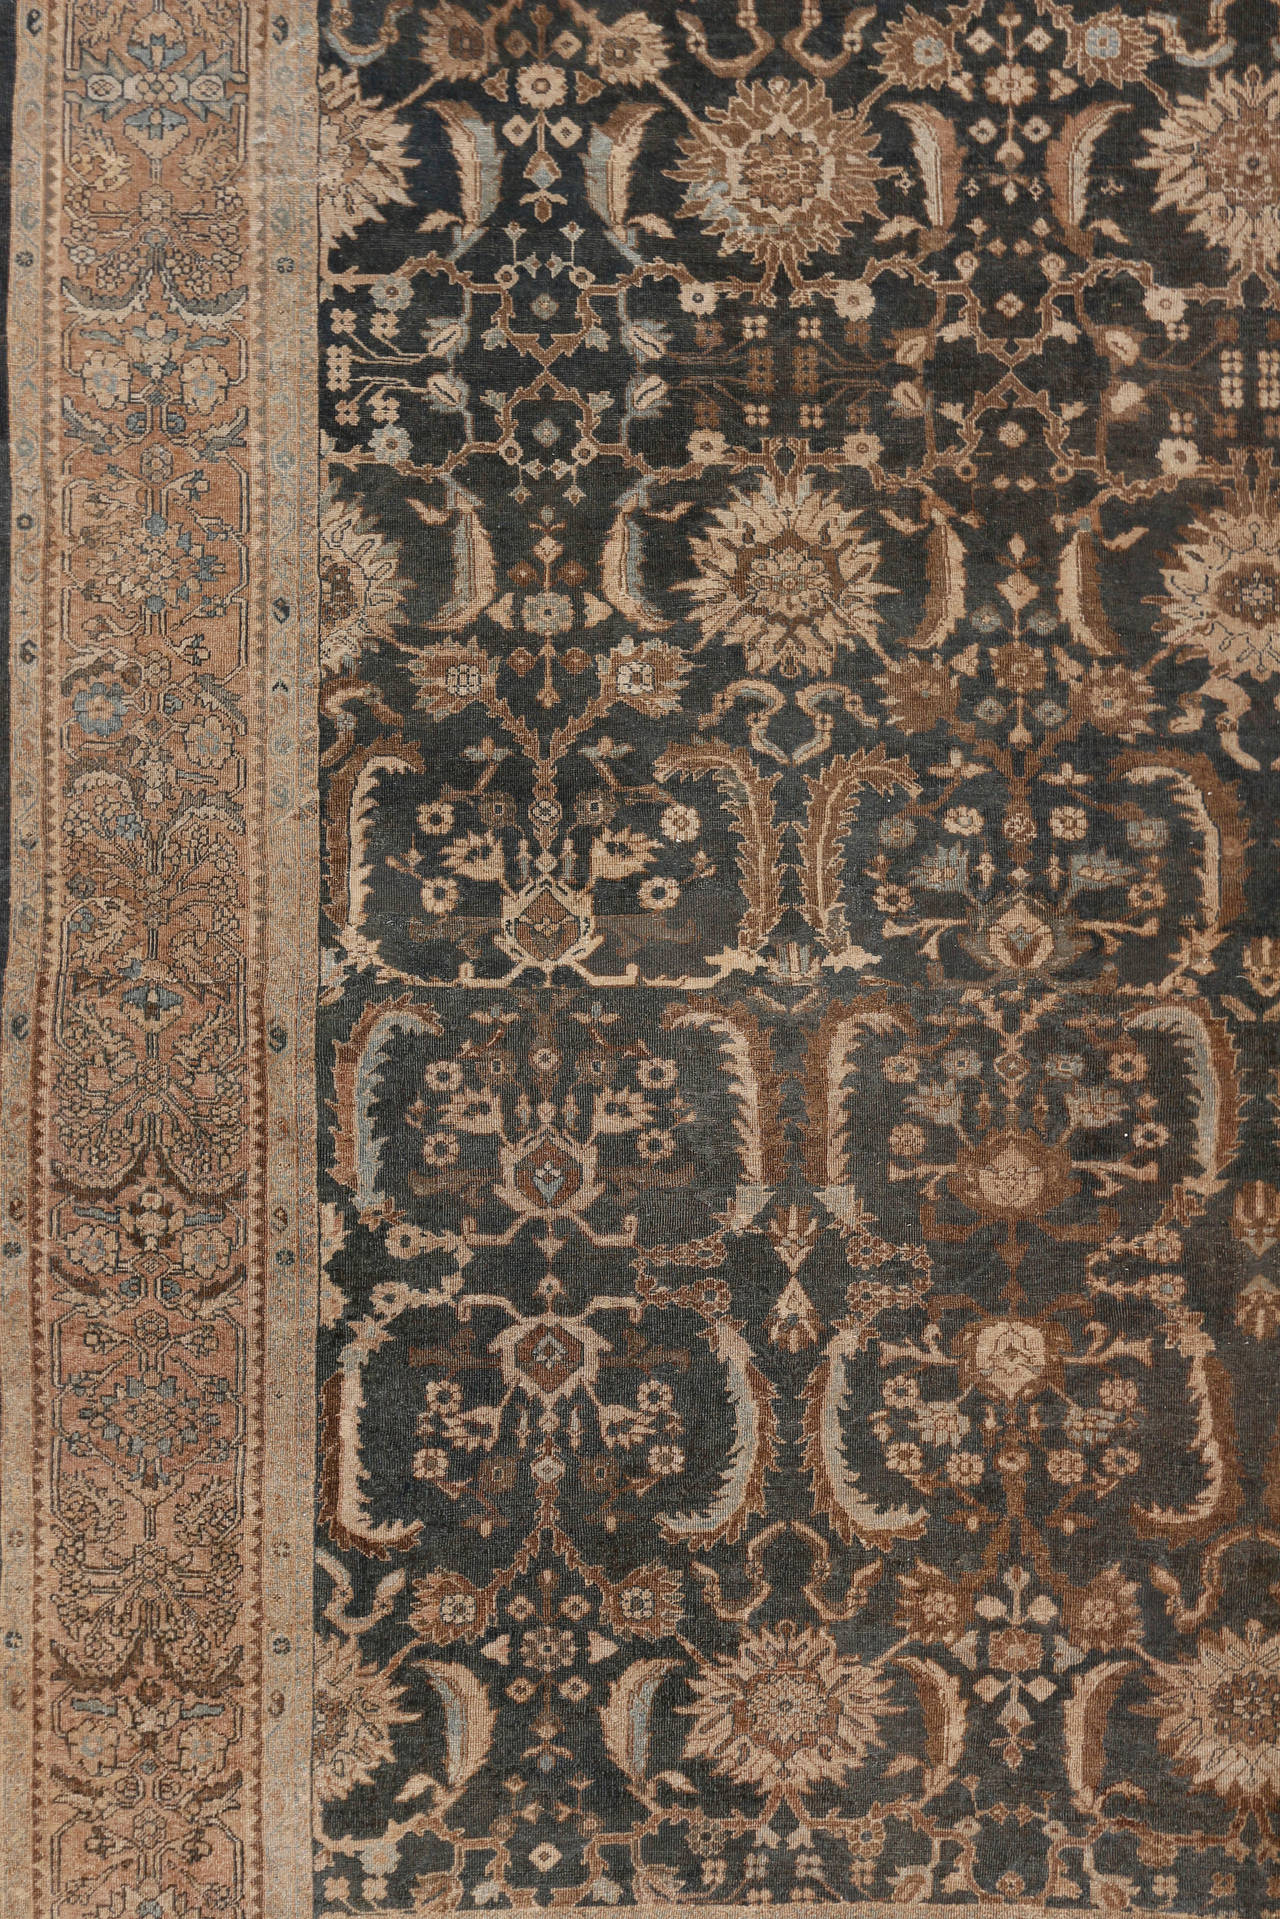 Antique Square Sultanabad Rug Circa 1890 For Sale At 1stdibs